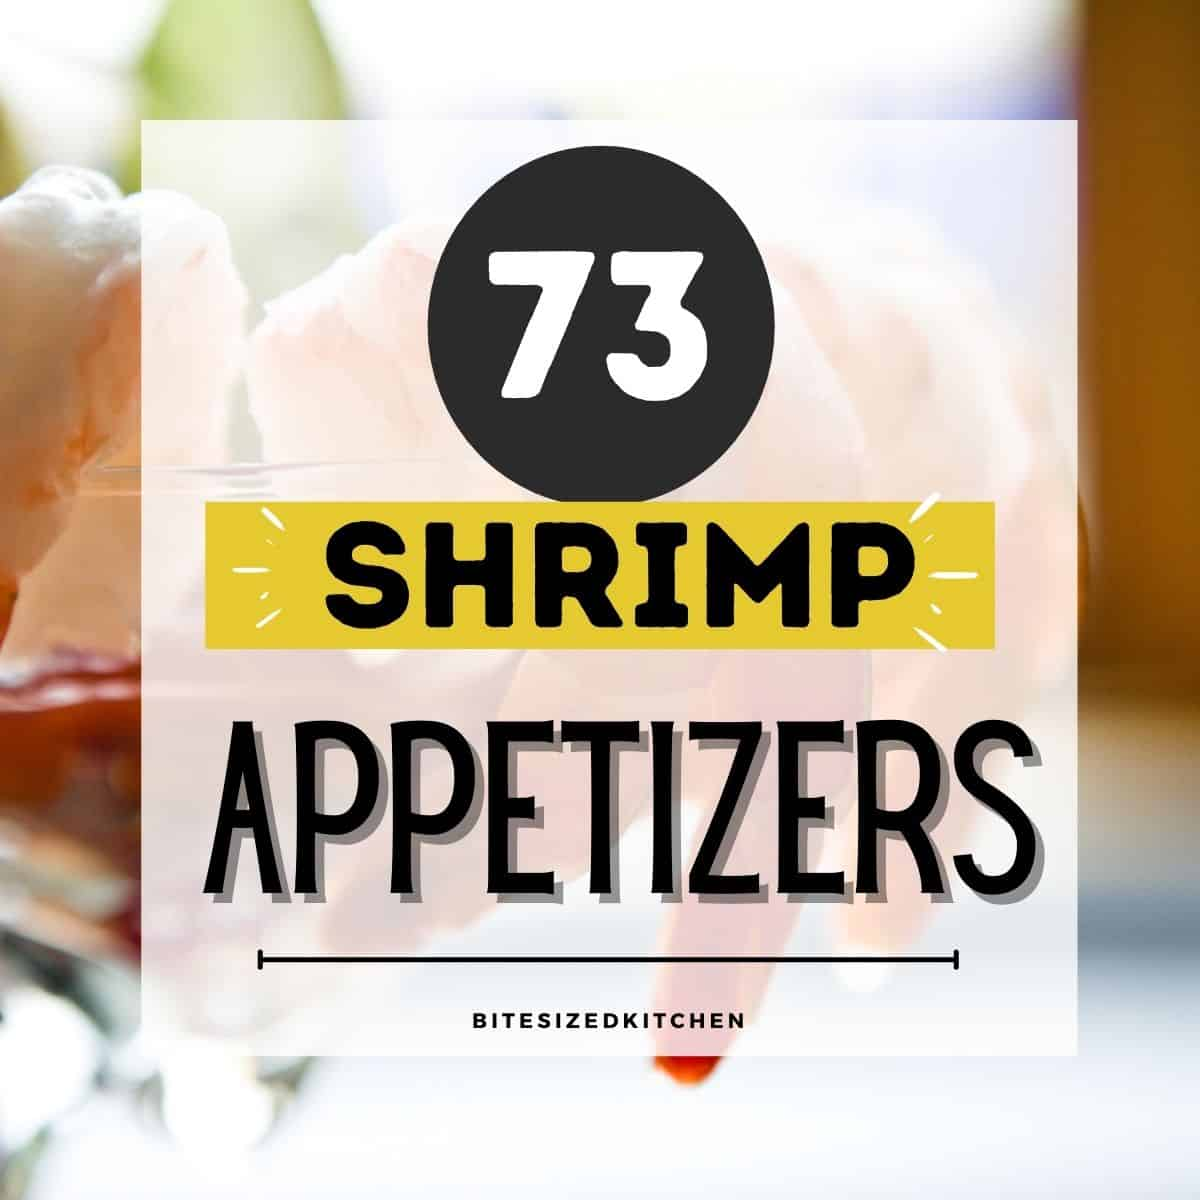 """shrimp in a cup with text overlay saying """"73 shrimp appetizers""""."""